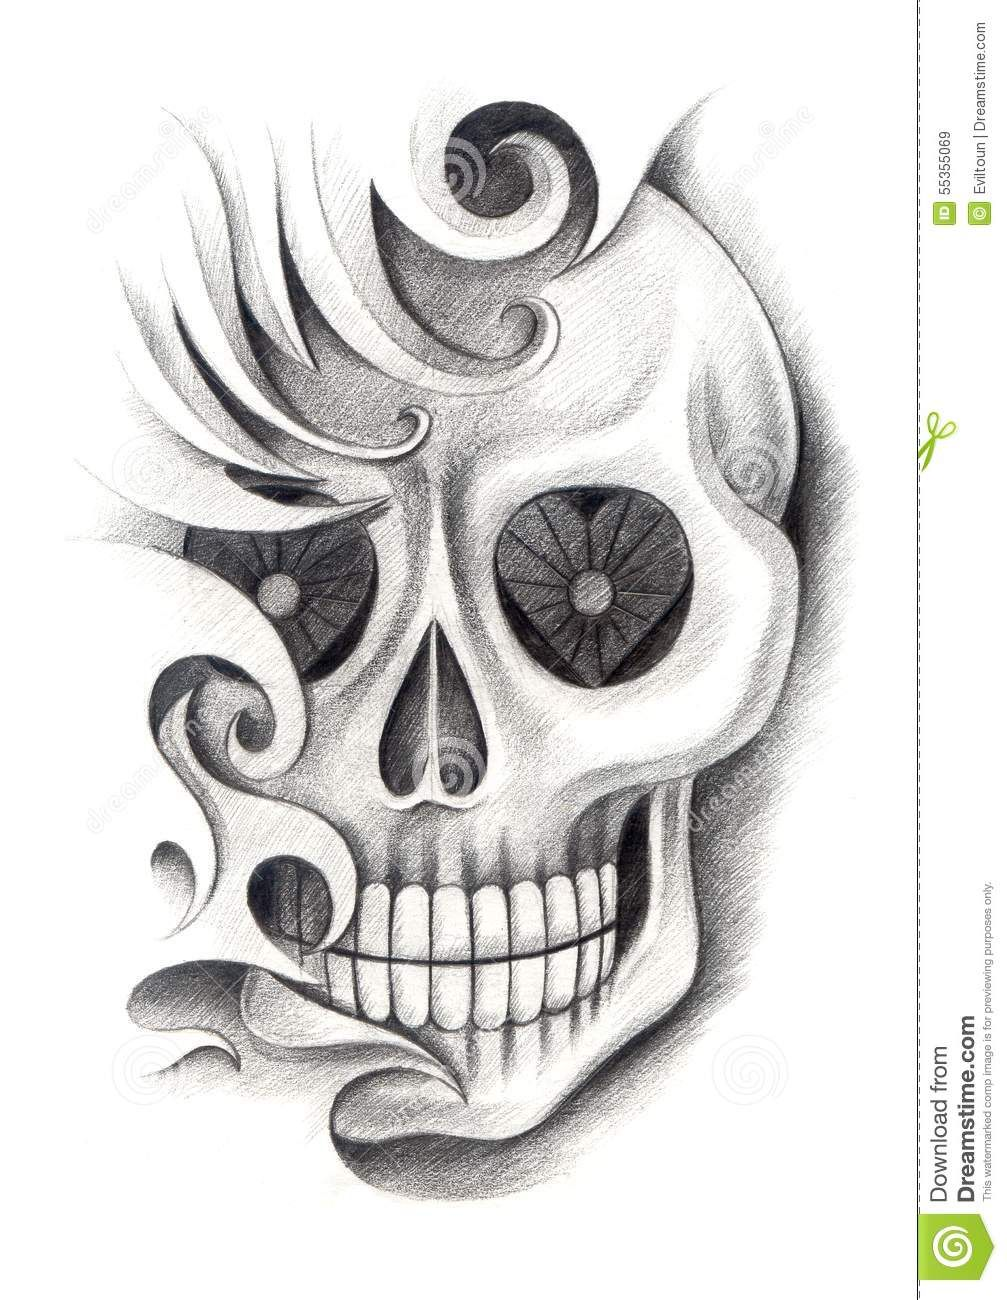 skull art tattoo design head mix tribal hand pencil drawing paper 1007 1300. Black Bedroom Furniture Sets. Home Design Ideas